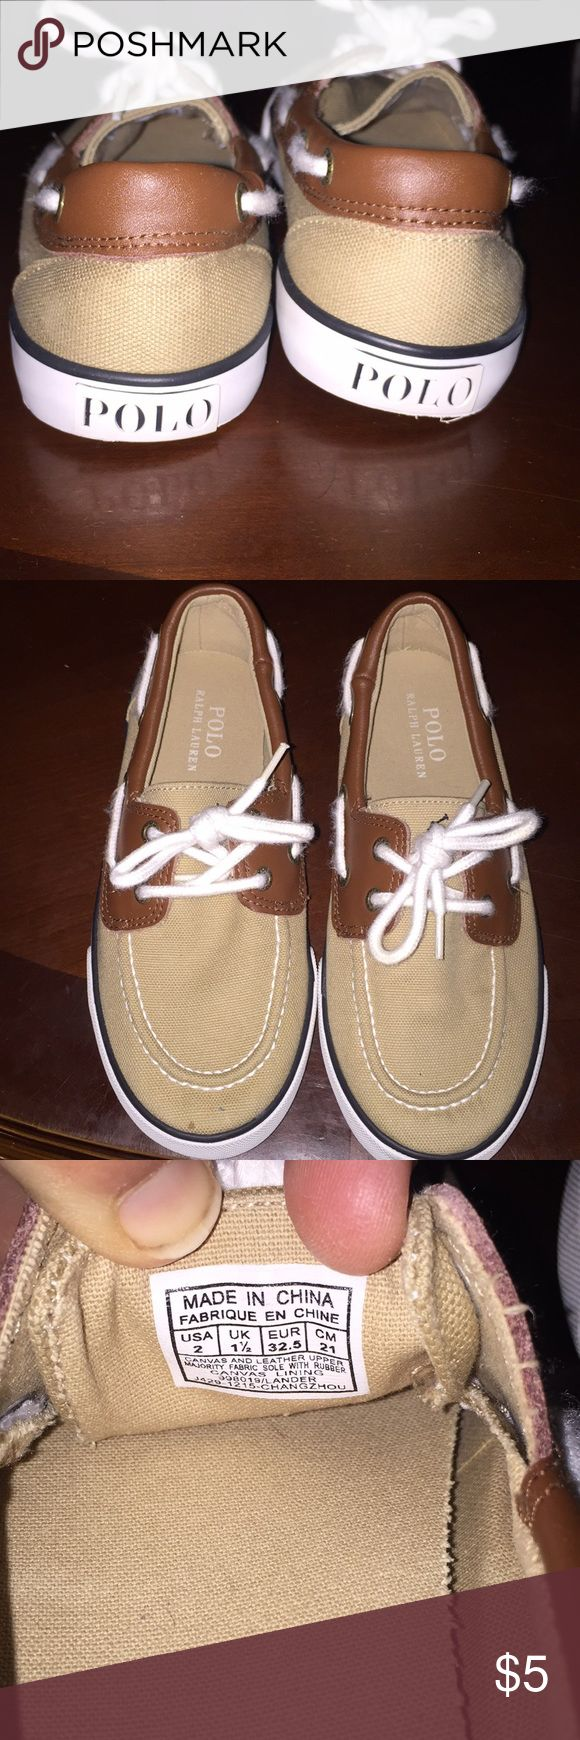 Ralph Lauren polo boys boat shoes Ralph Lauren polo boys size 2 boat shoes. Used, only worn a couple times. Like new. Could use new shoe strings. When I cleaned them the shoe strings came out fuzzy. Great for Easter pictures! Polo by Ralph Lauren Shoes Dress Shoes